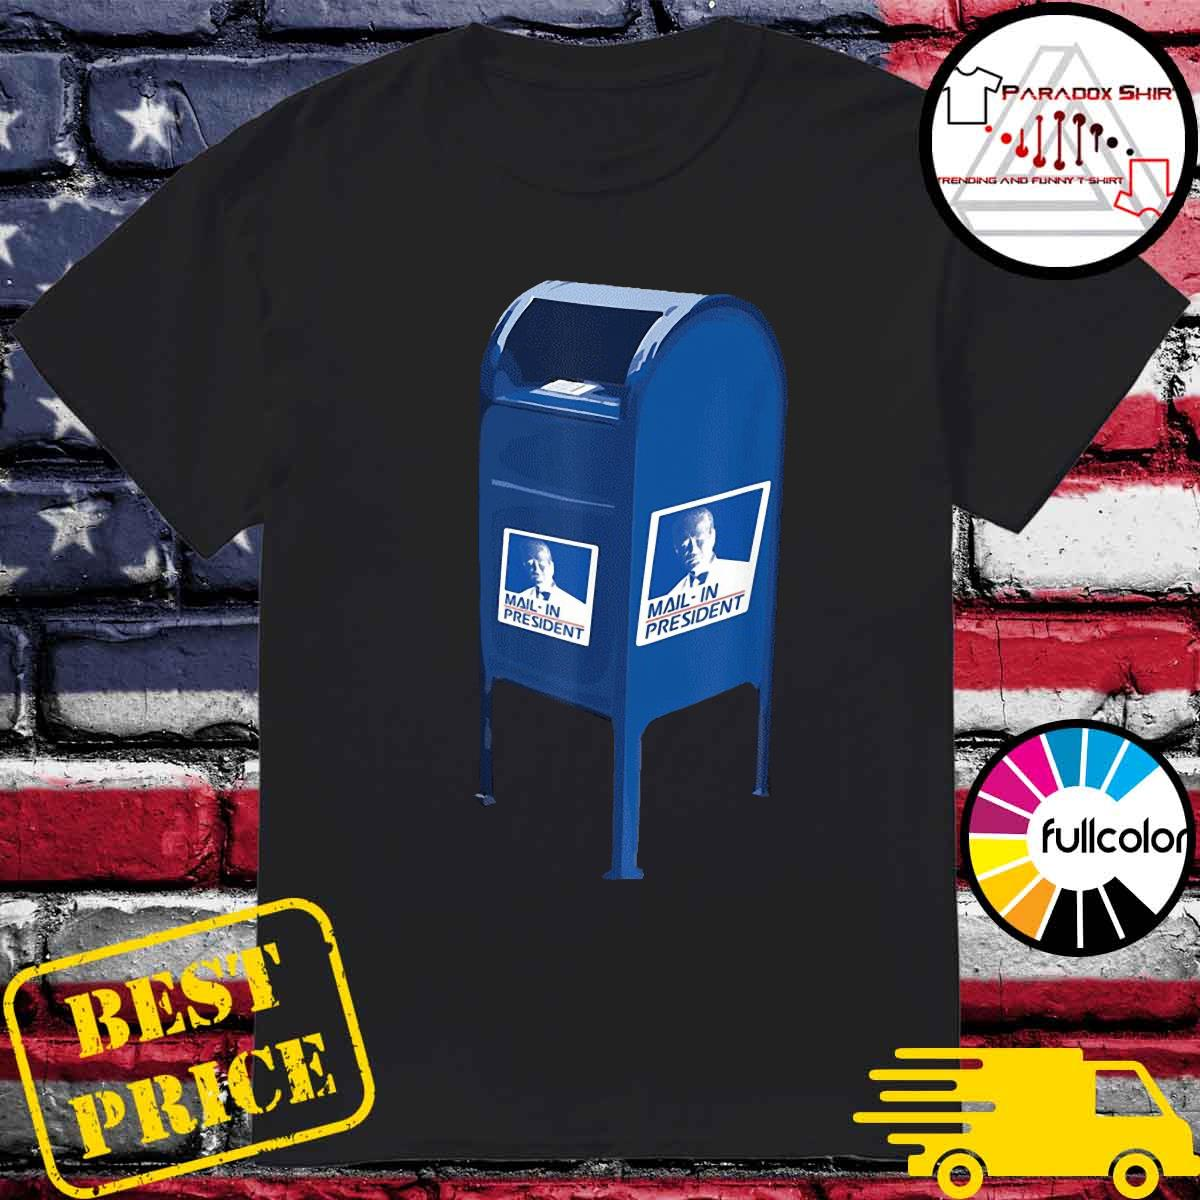 Mail-in president 2020 shirt